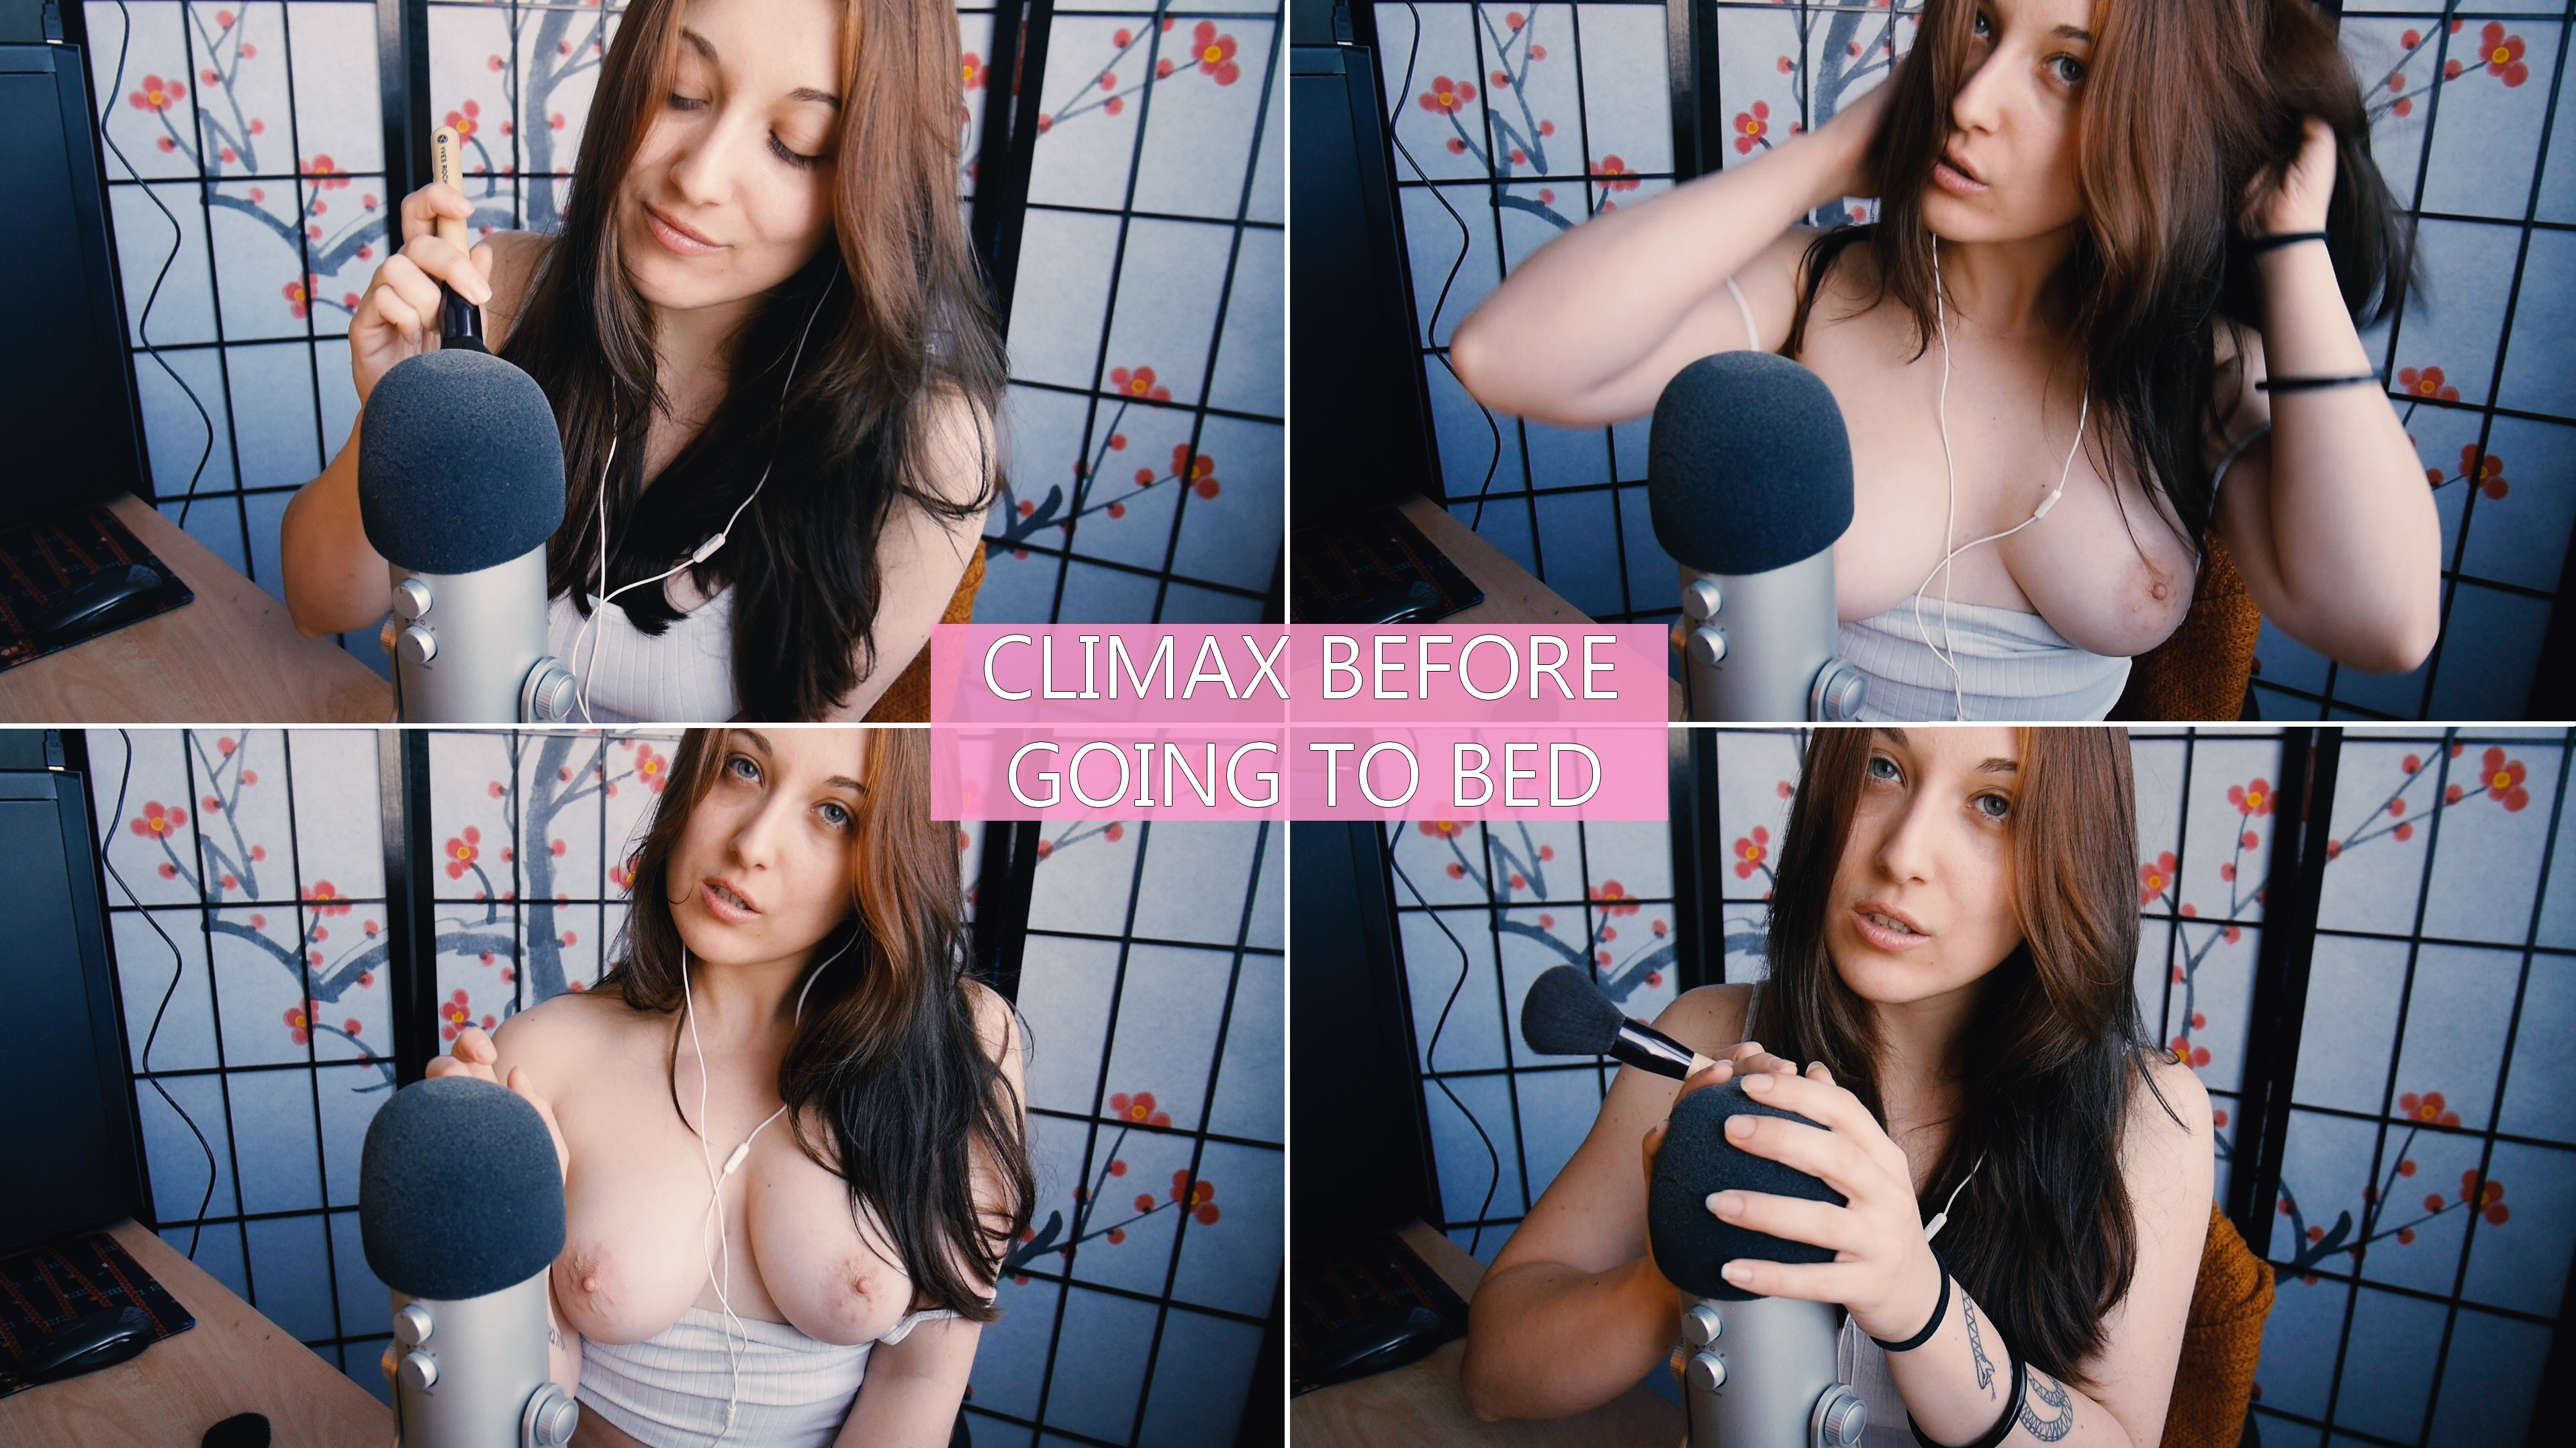 ASMR JOI – Climax Before Going To Bed